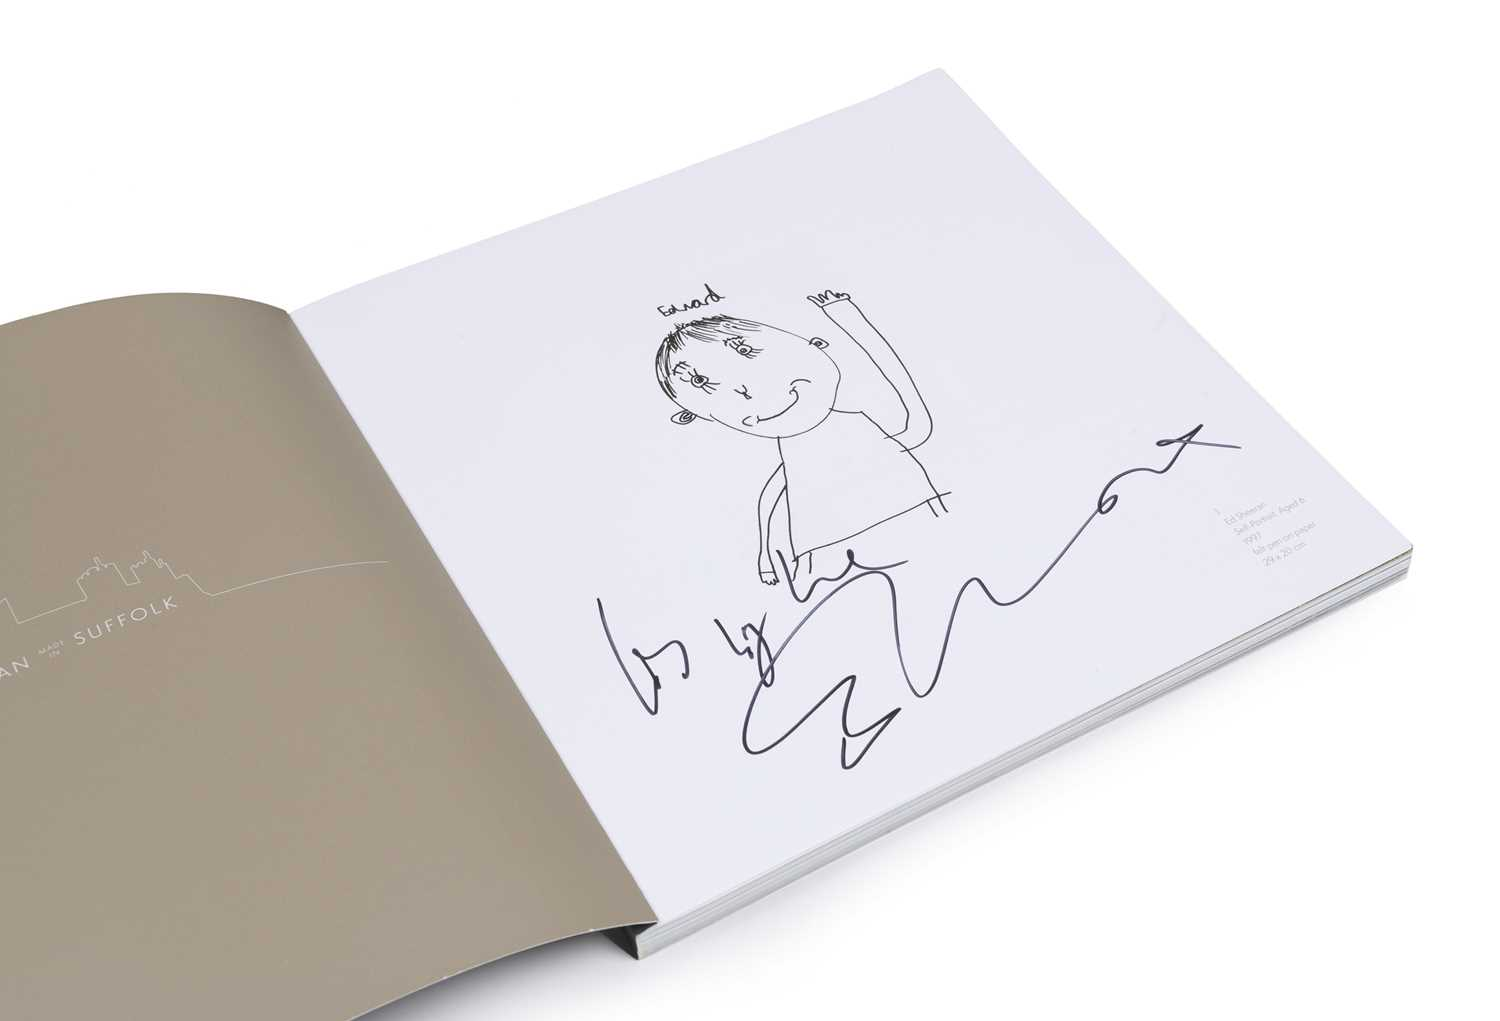 Signed Ed Sheeran: Made in Suffolk Exhibition Book 2019 This book was written by Ed Sheeran's - Image 2 of 2